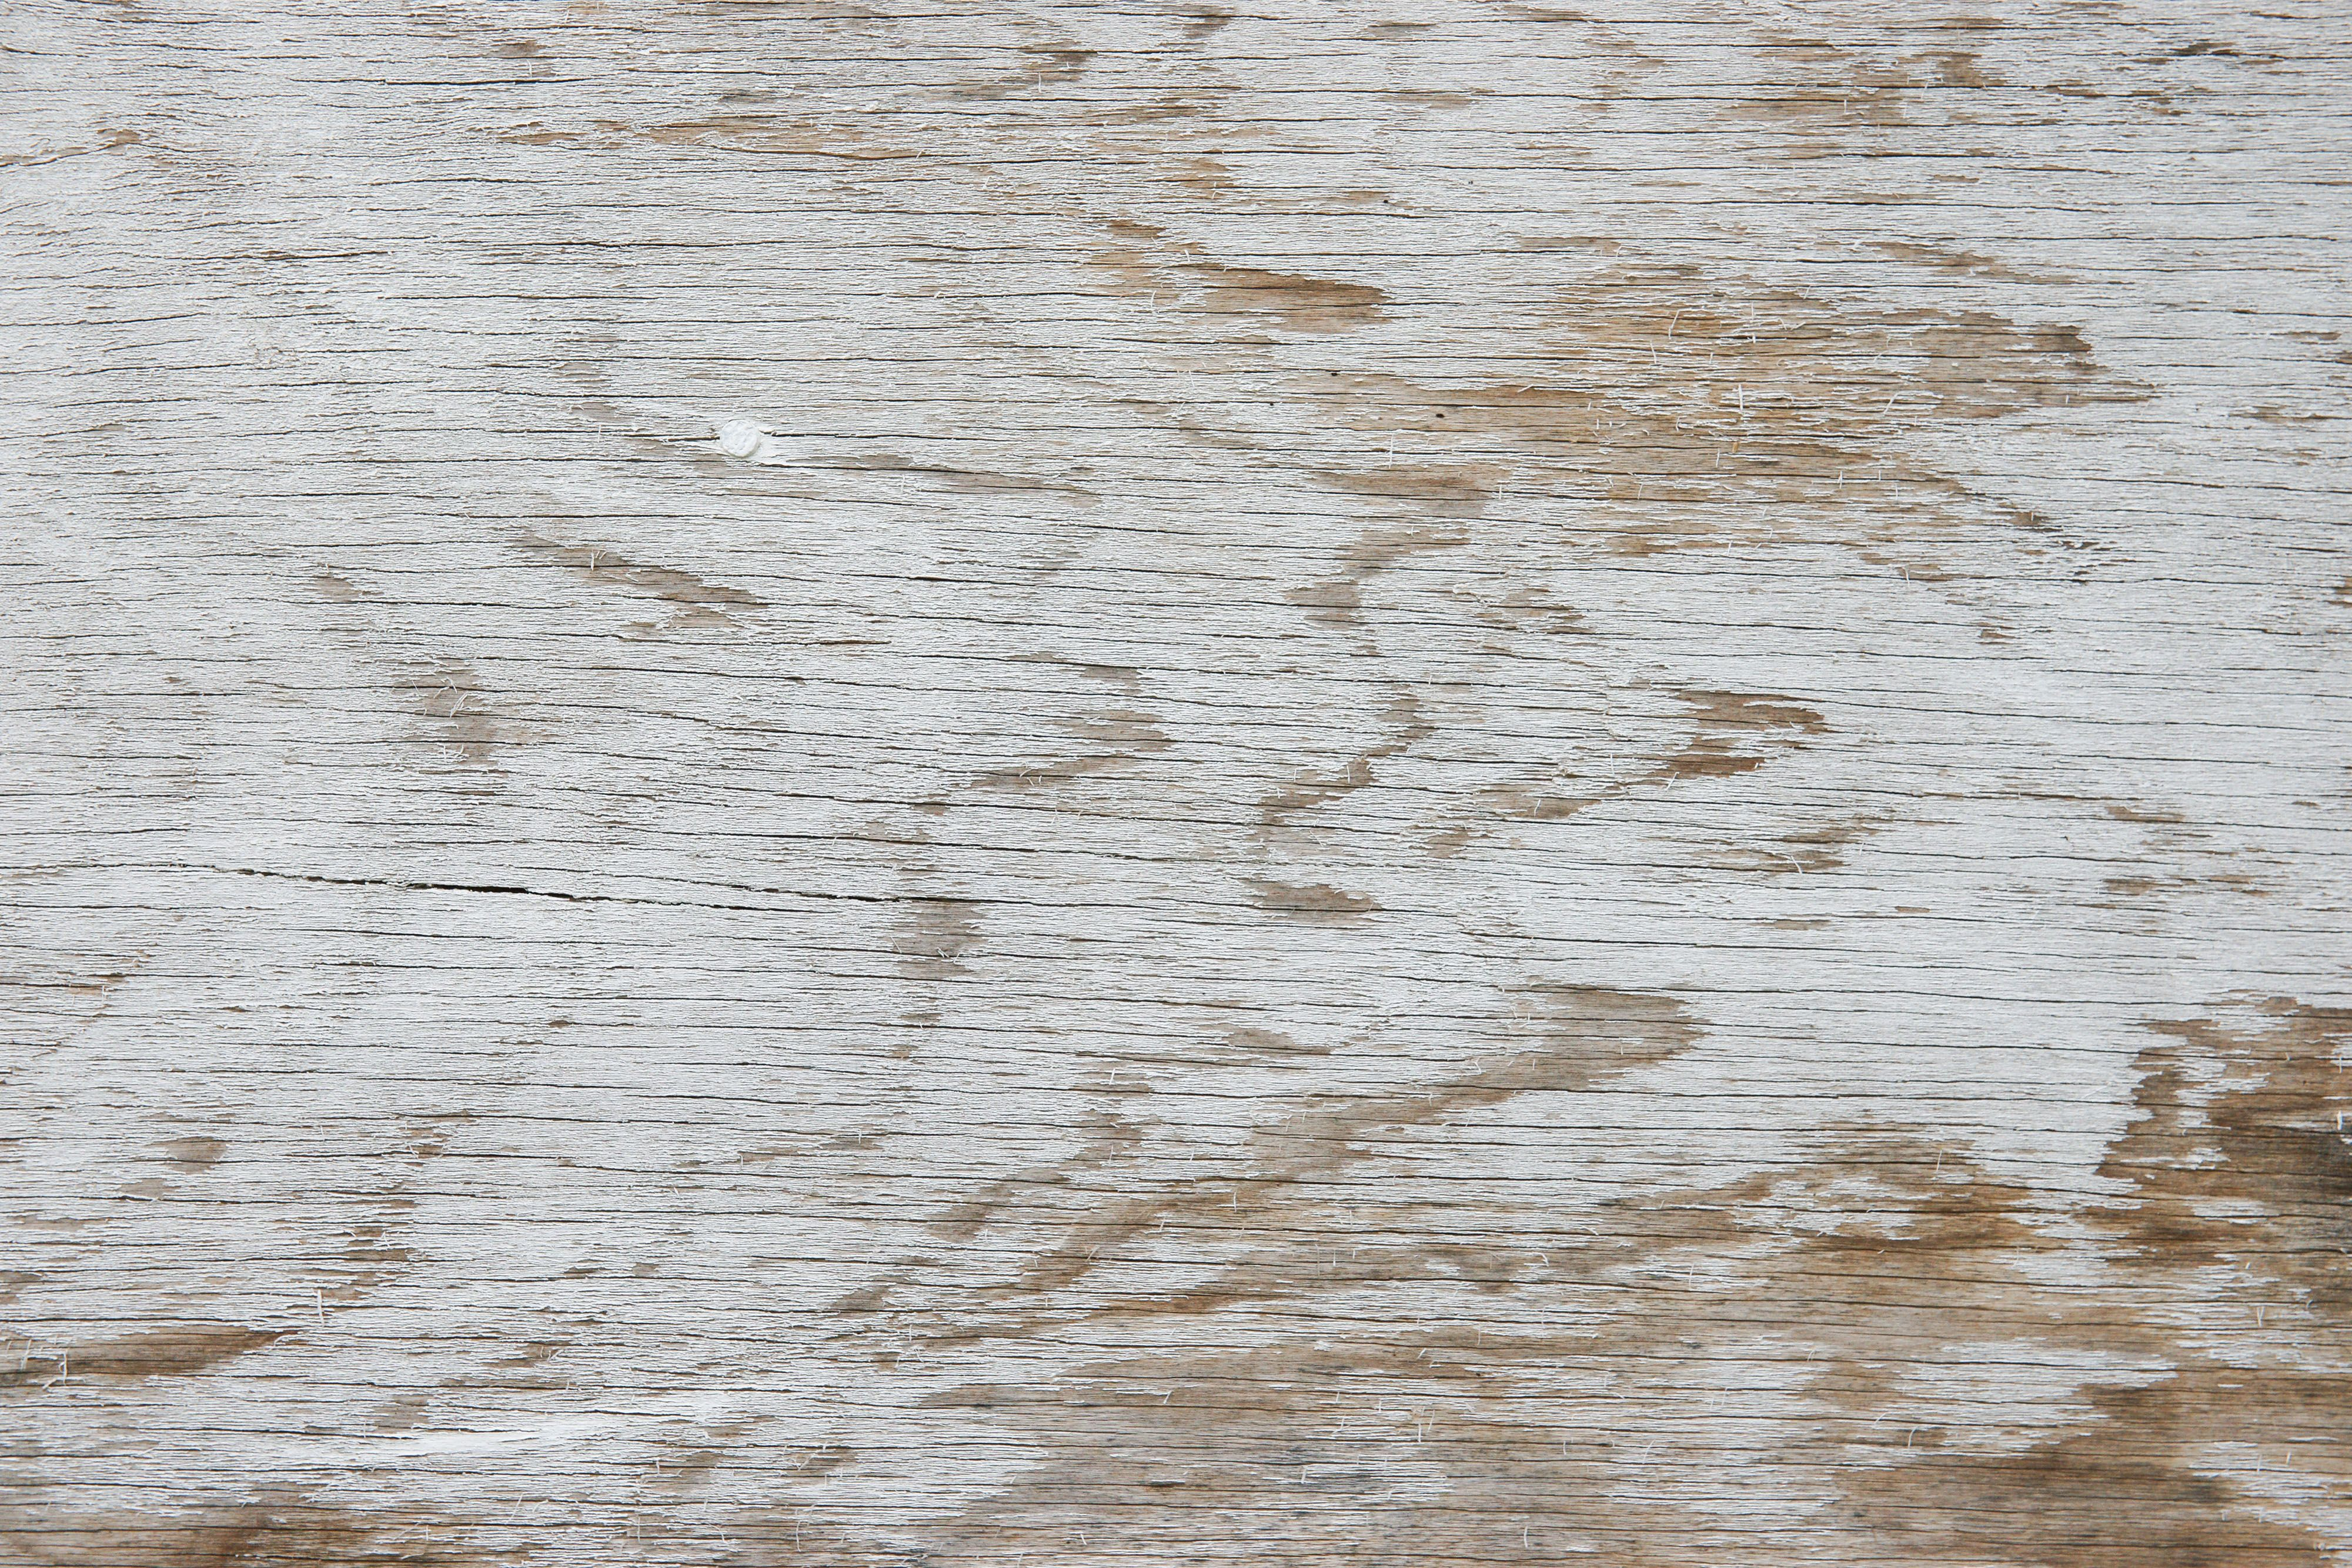 Another Two More Old White Painted Wood Textures Http Www Myfreetextures Com Another Two Old Whit Painted Wood Texture Wood Background Dark Wood Background